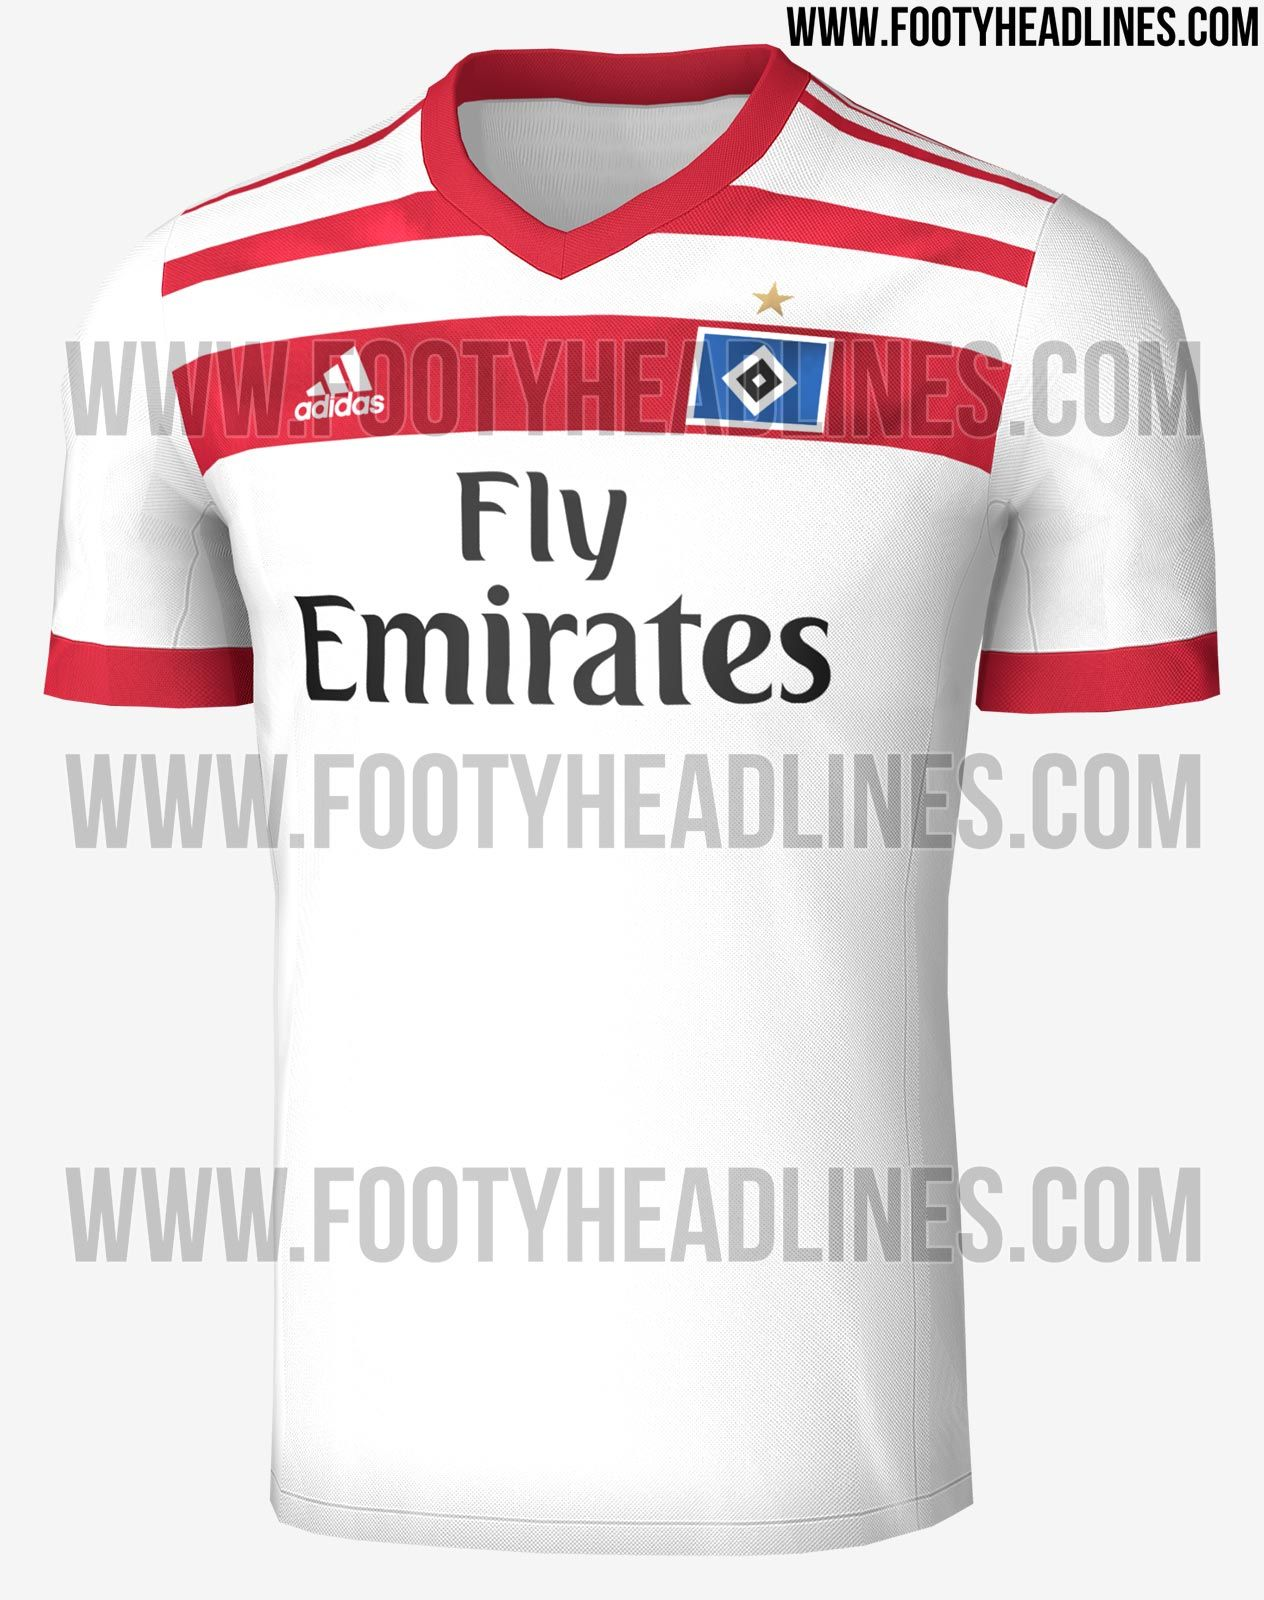 The Hamburg 17-18 home kit introduces a new look for the Bundesliga club,